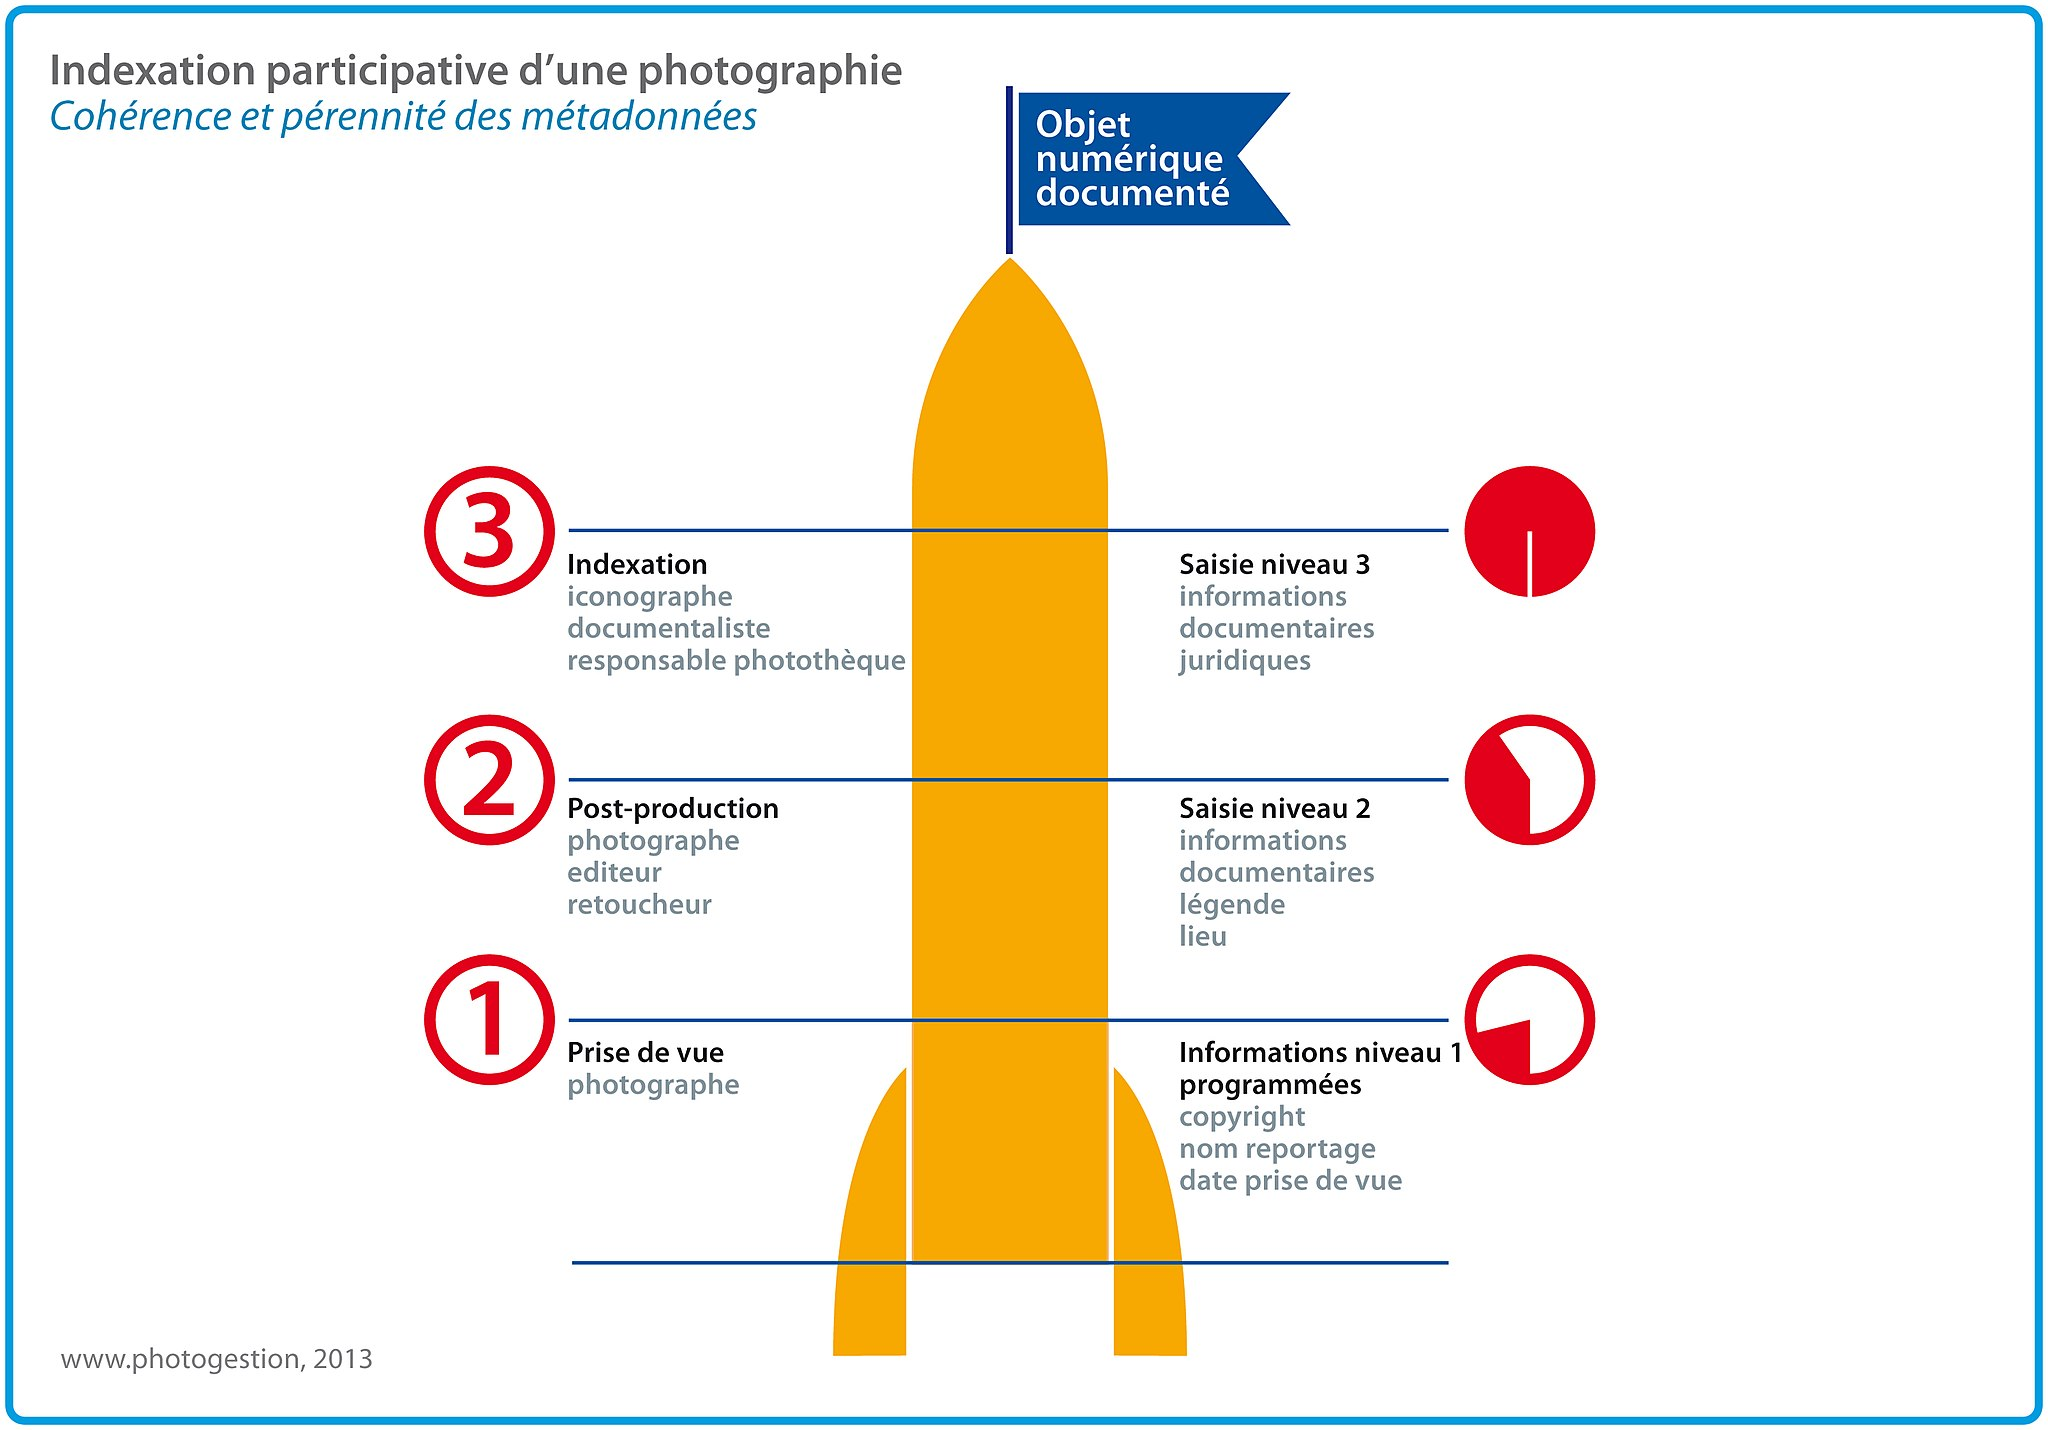 Indexation participative d'une photographie.